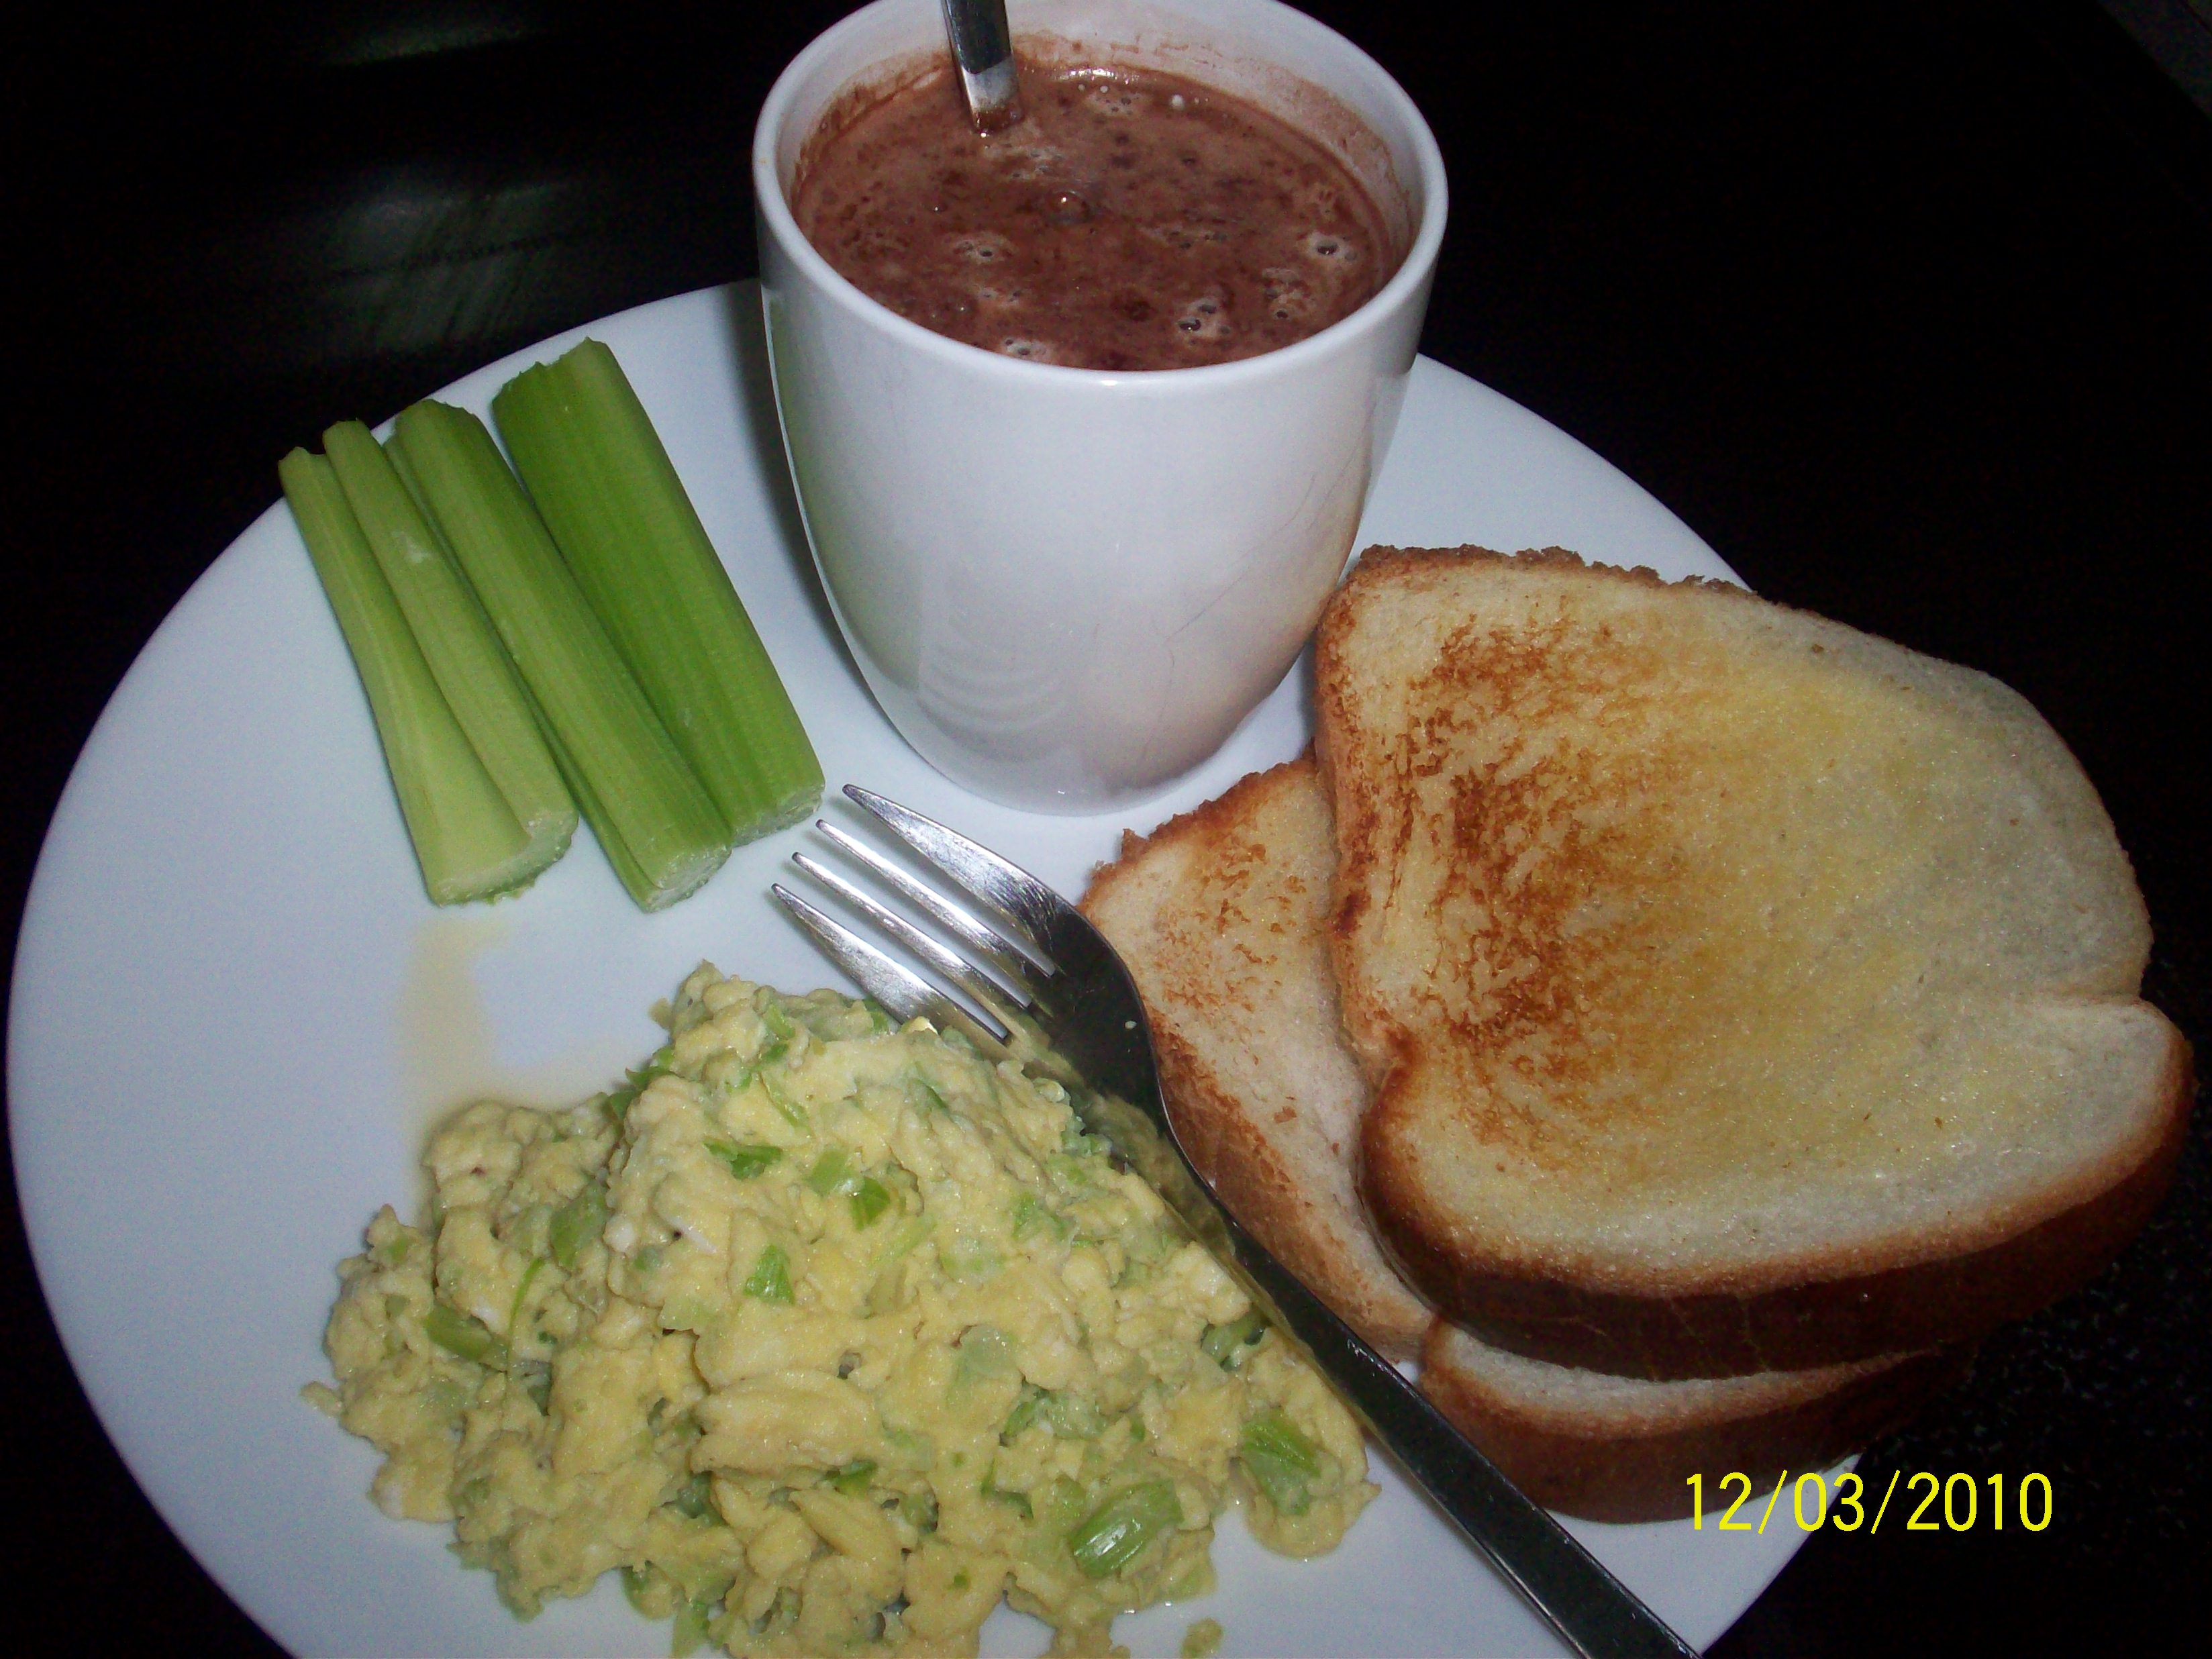 http://foodloader.net/cutie_2010-03-12_toast_with_scrambled_eggs_and_hot_chocolate_with_m.jpg